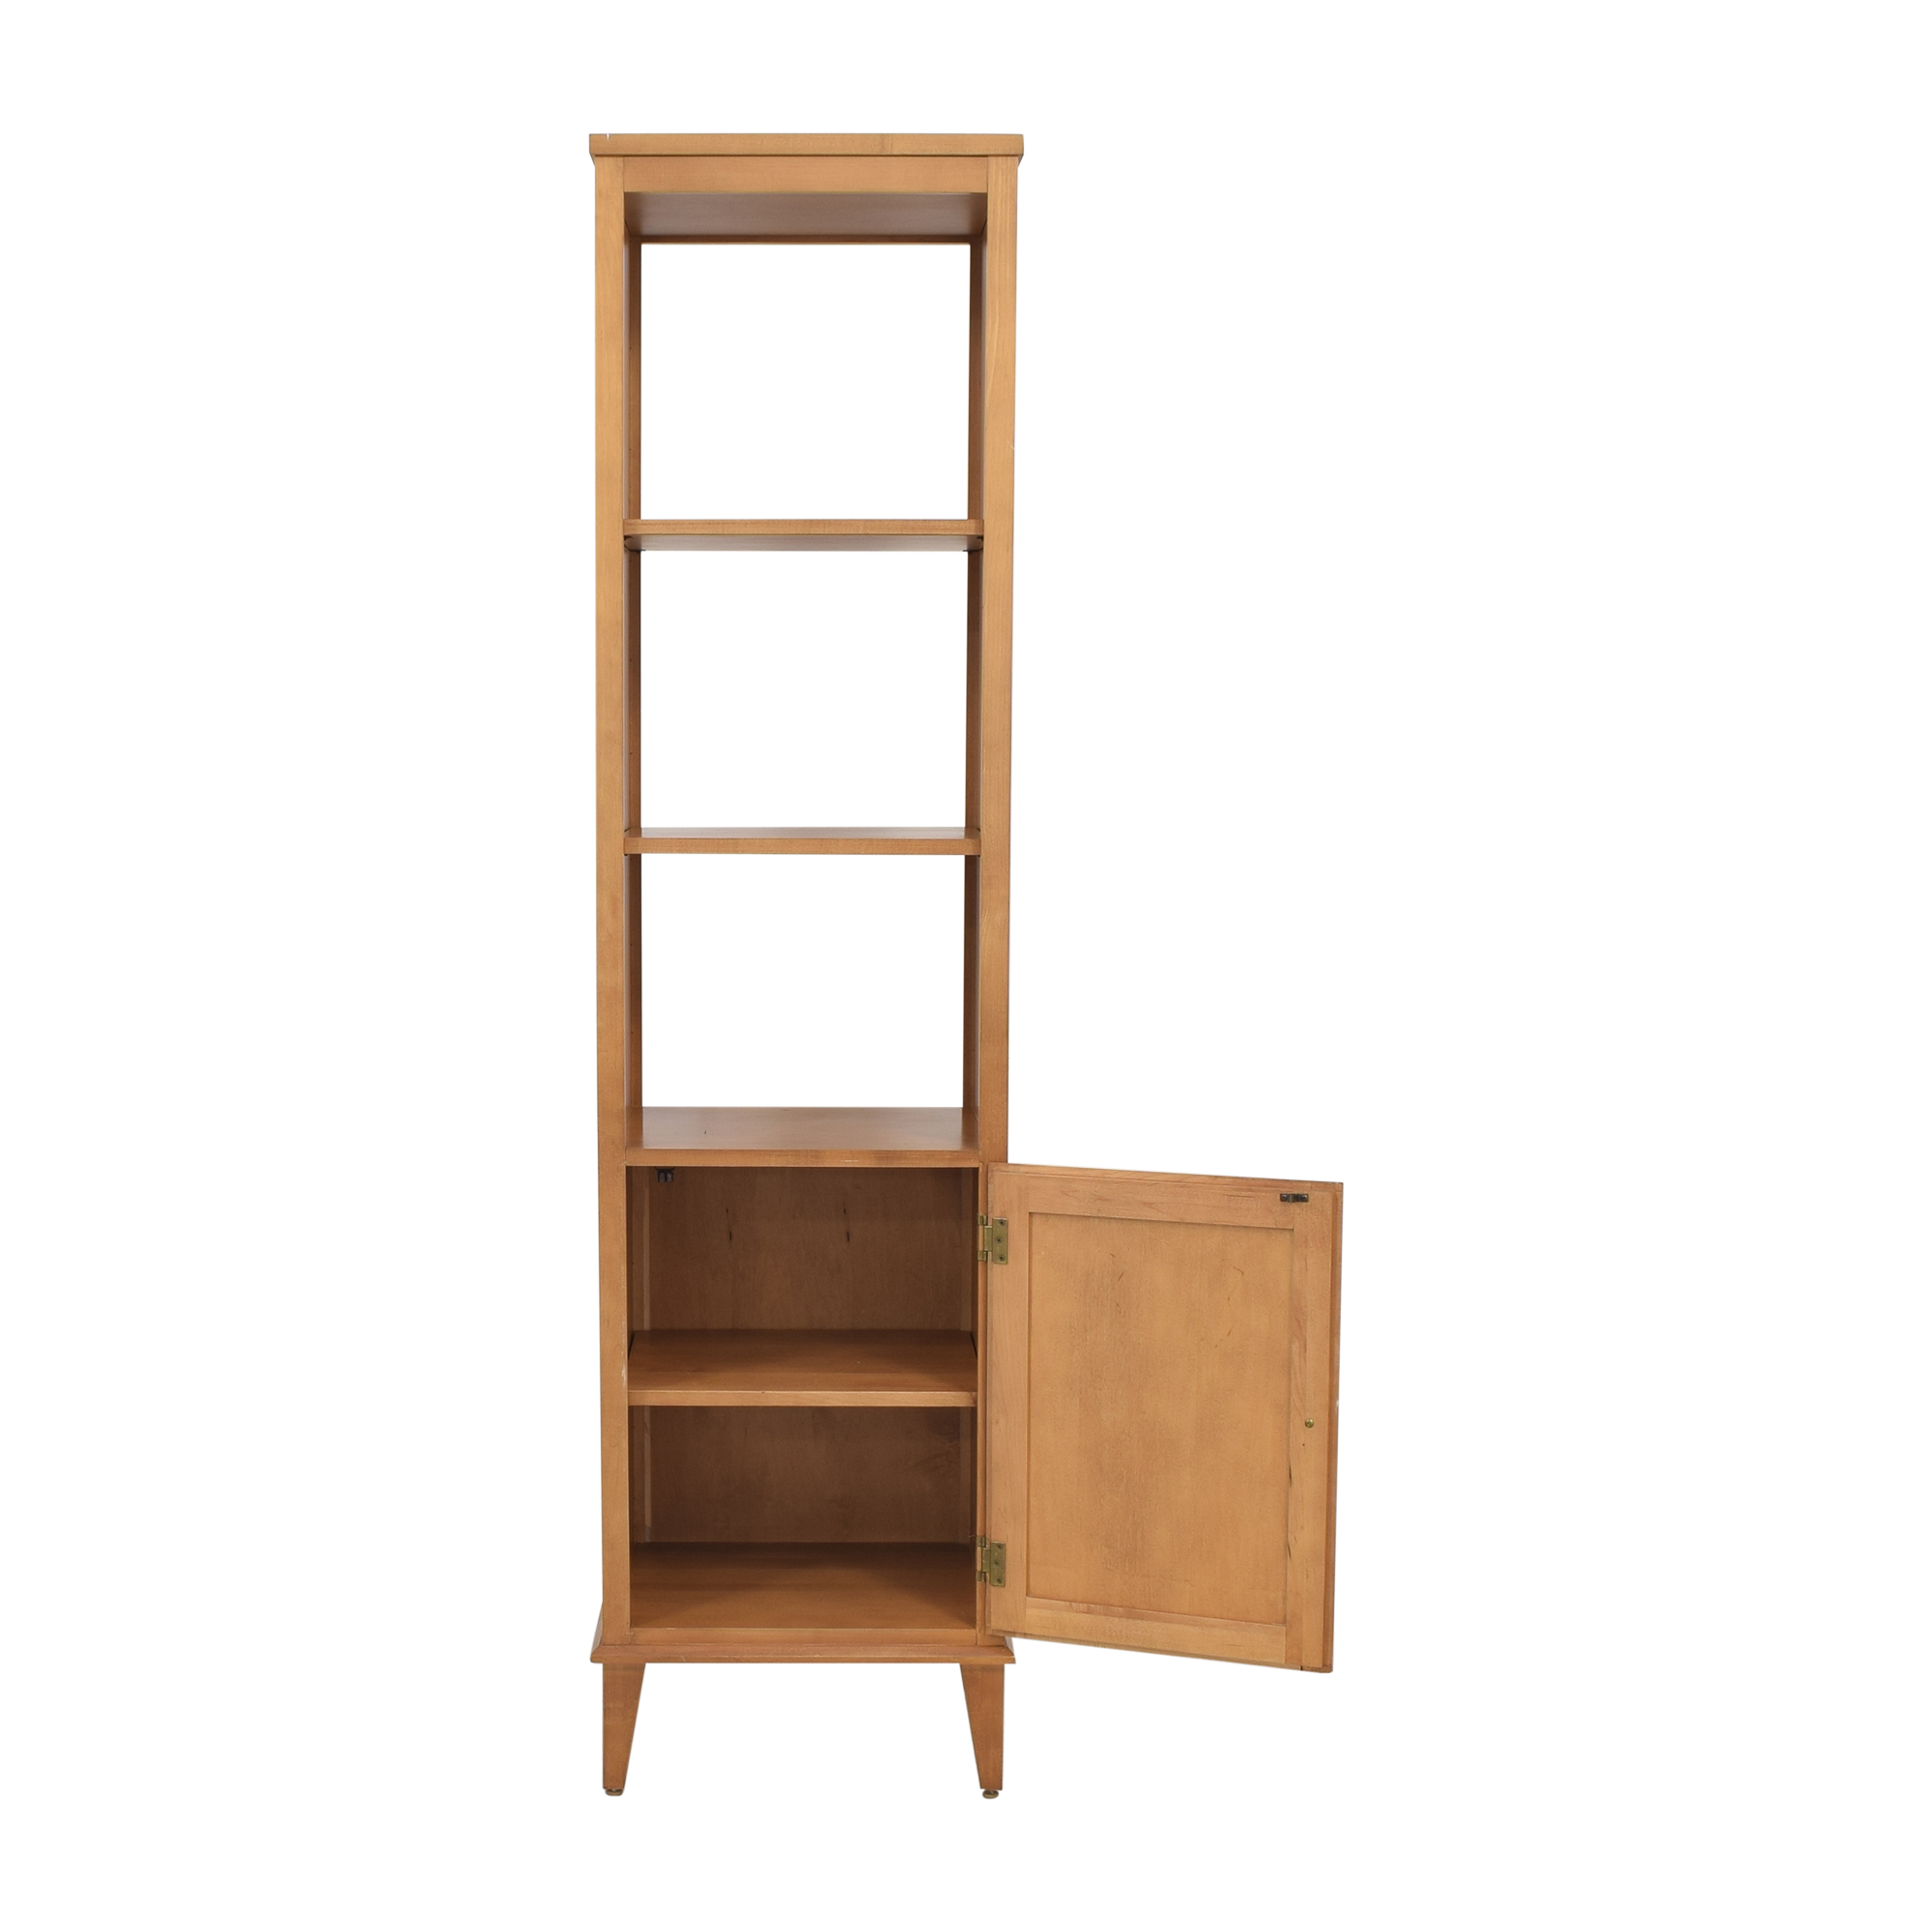 Ethan Allen Ethan Allen Elements Bookcase light brown